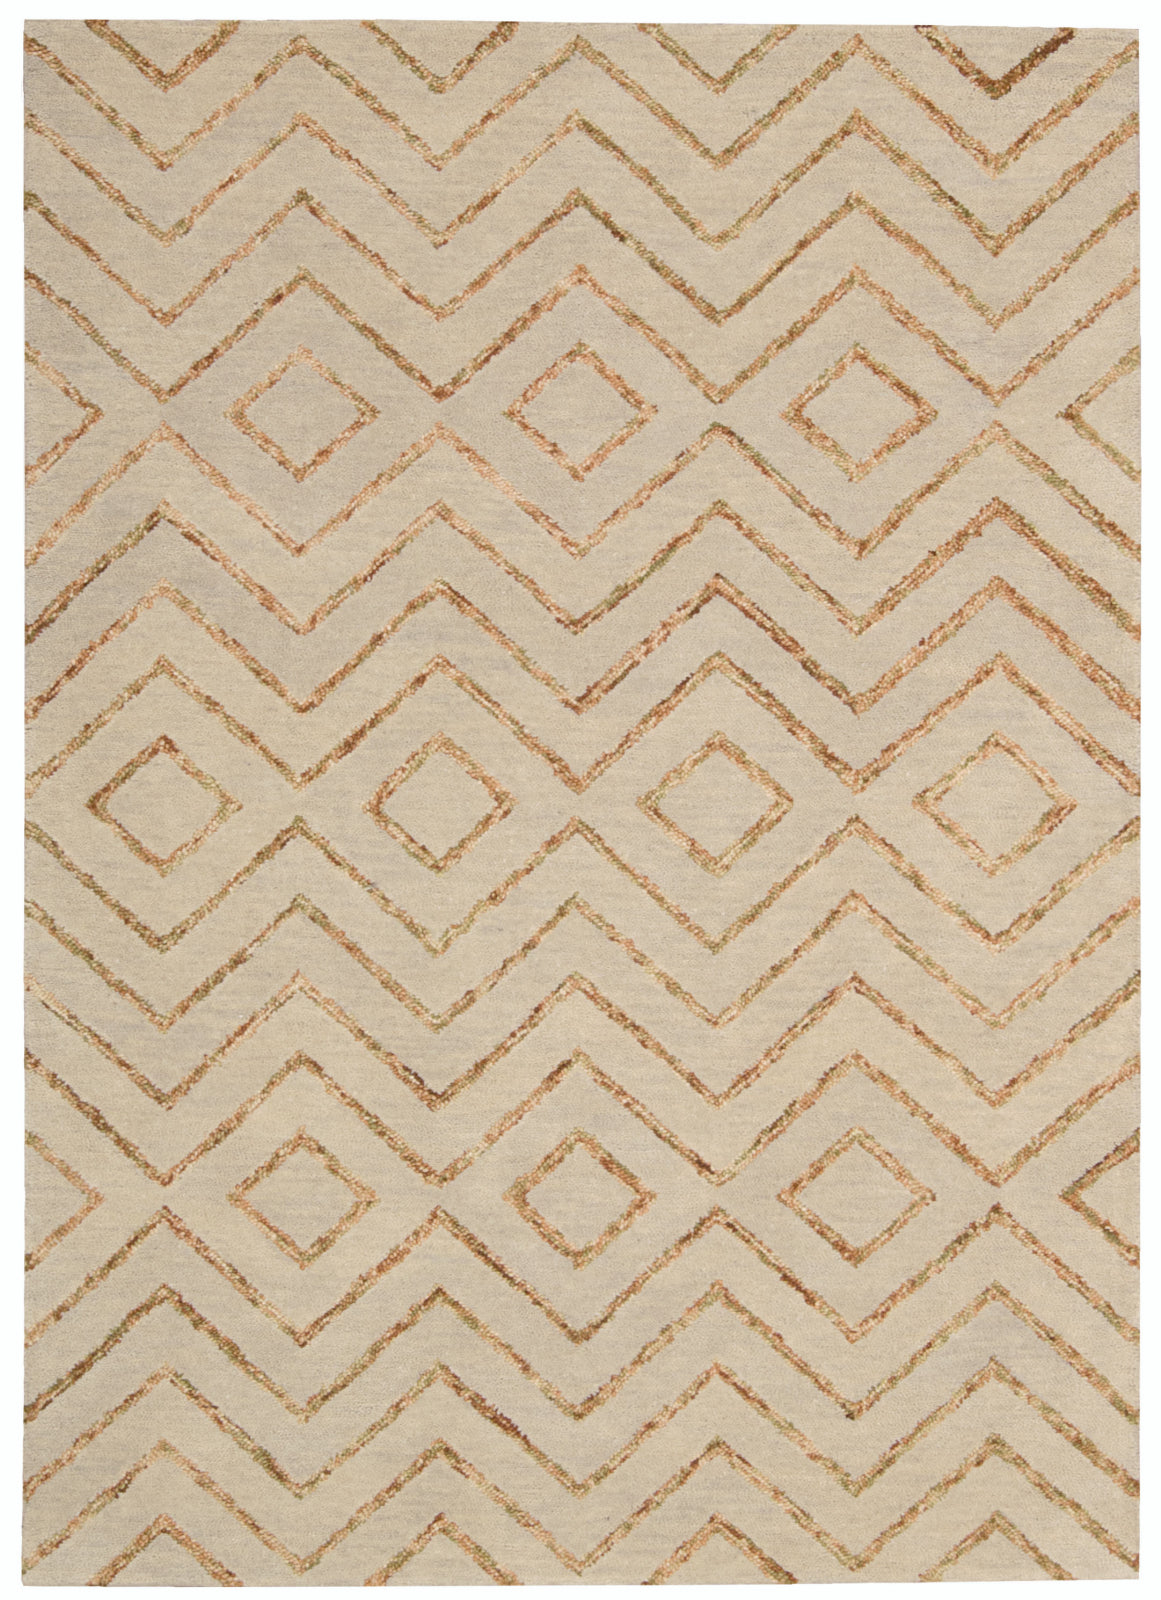 Nourison Intermix INT04 Sand Area Rug by Barclay Butera main image